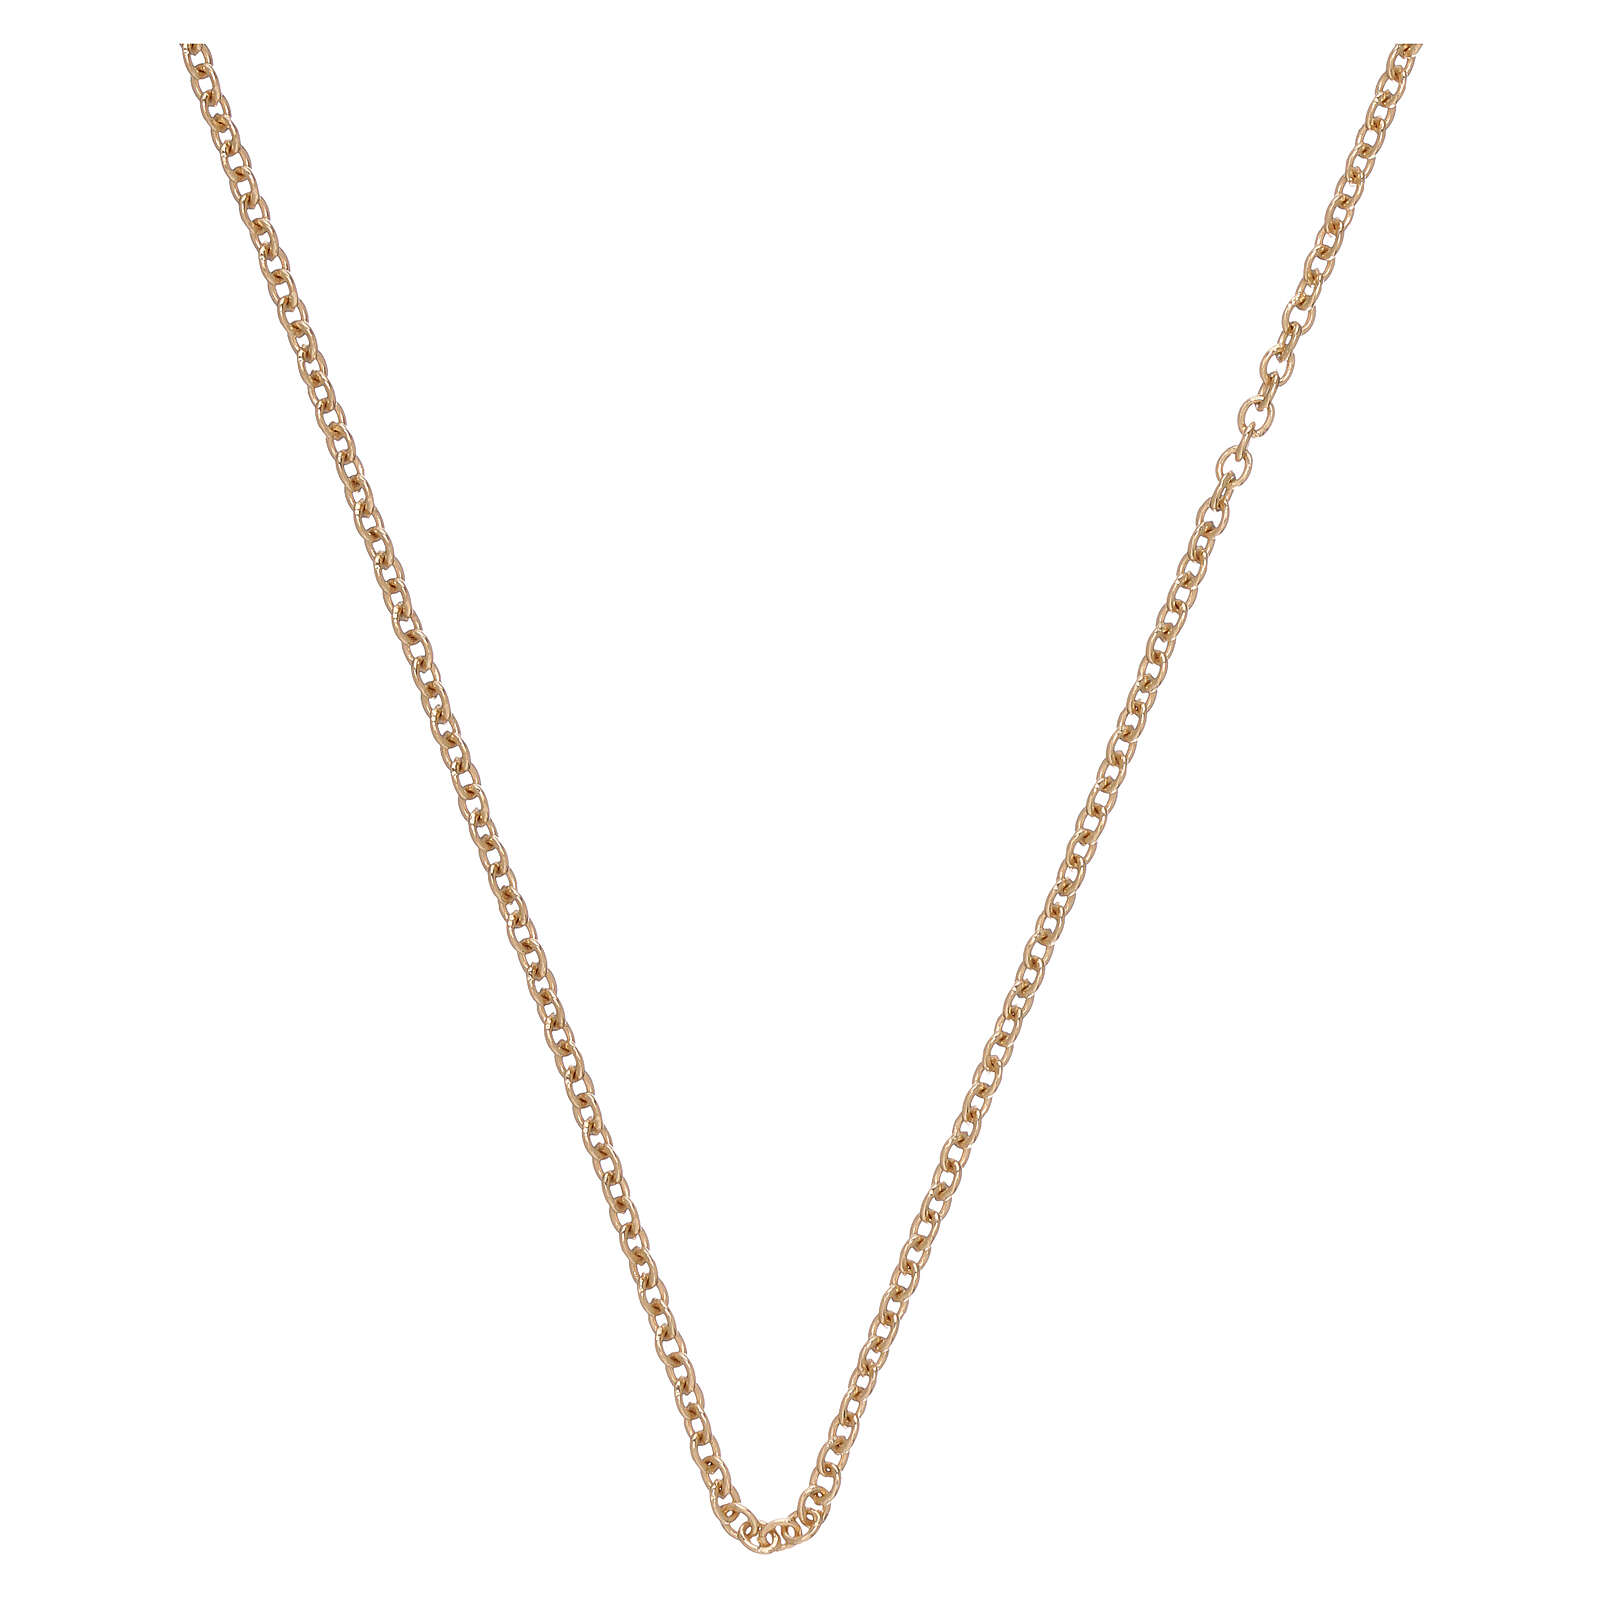 Rolo chain 750/00 yellow polished gold 15 3/4 in 4